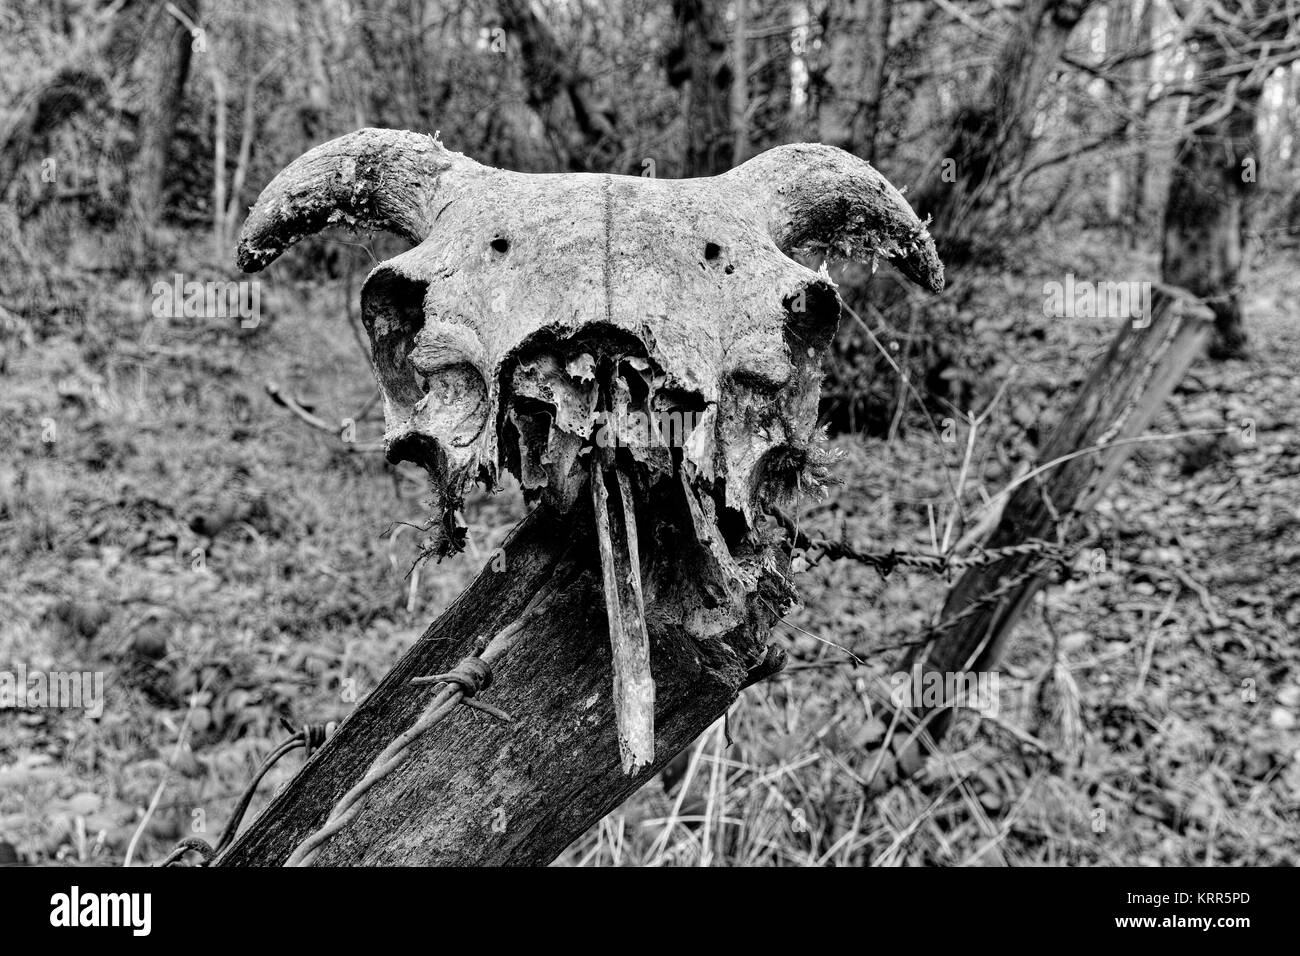 A sheep skull that is slowly disintegrating sitting on a fence post. - Stock Image